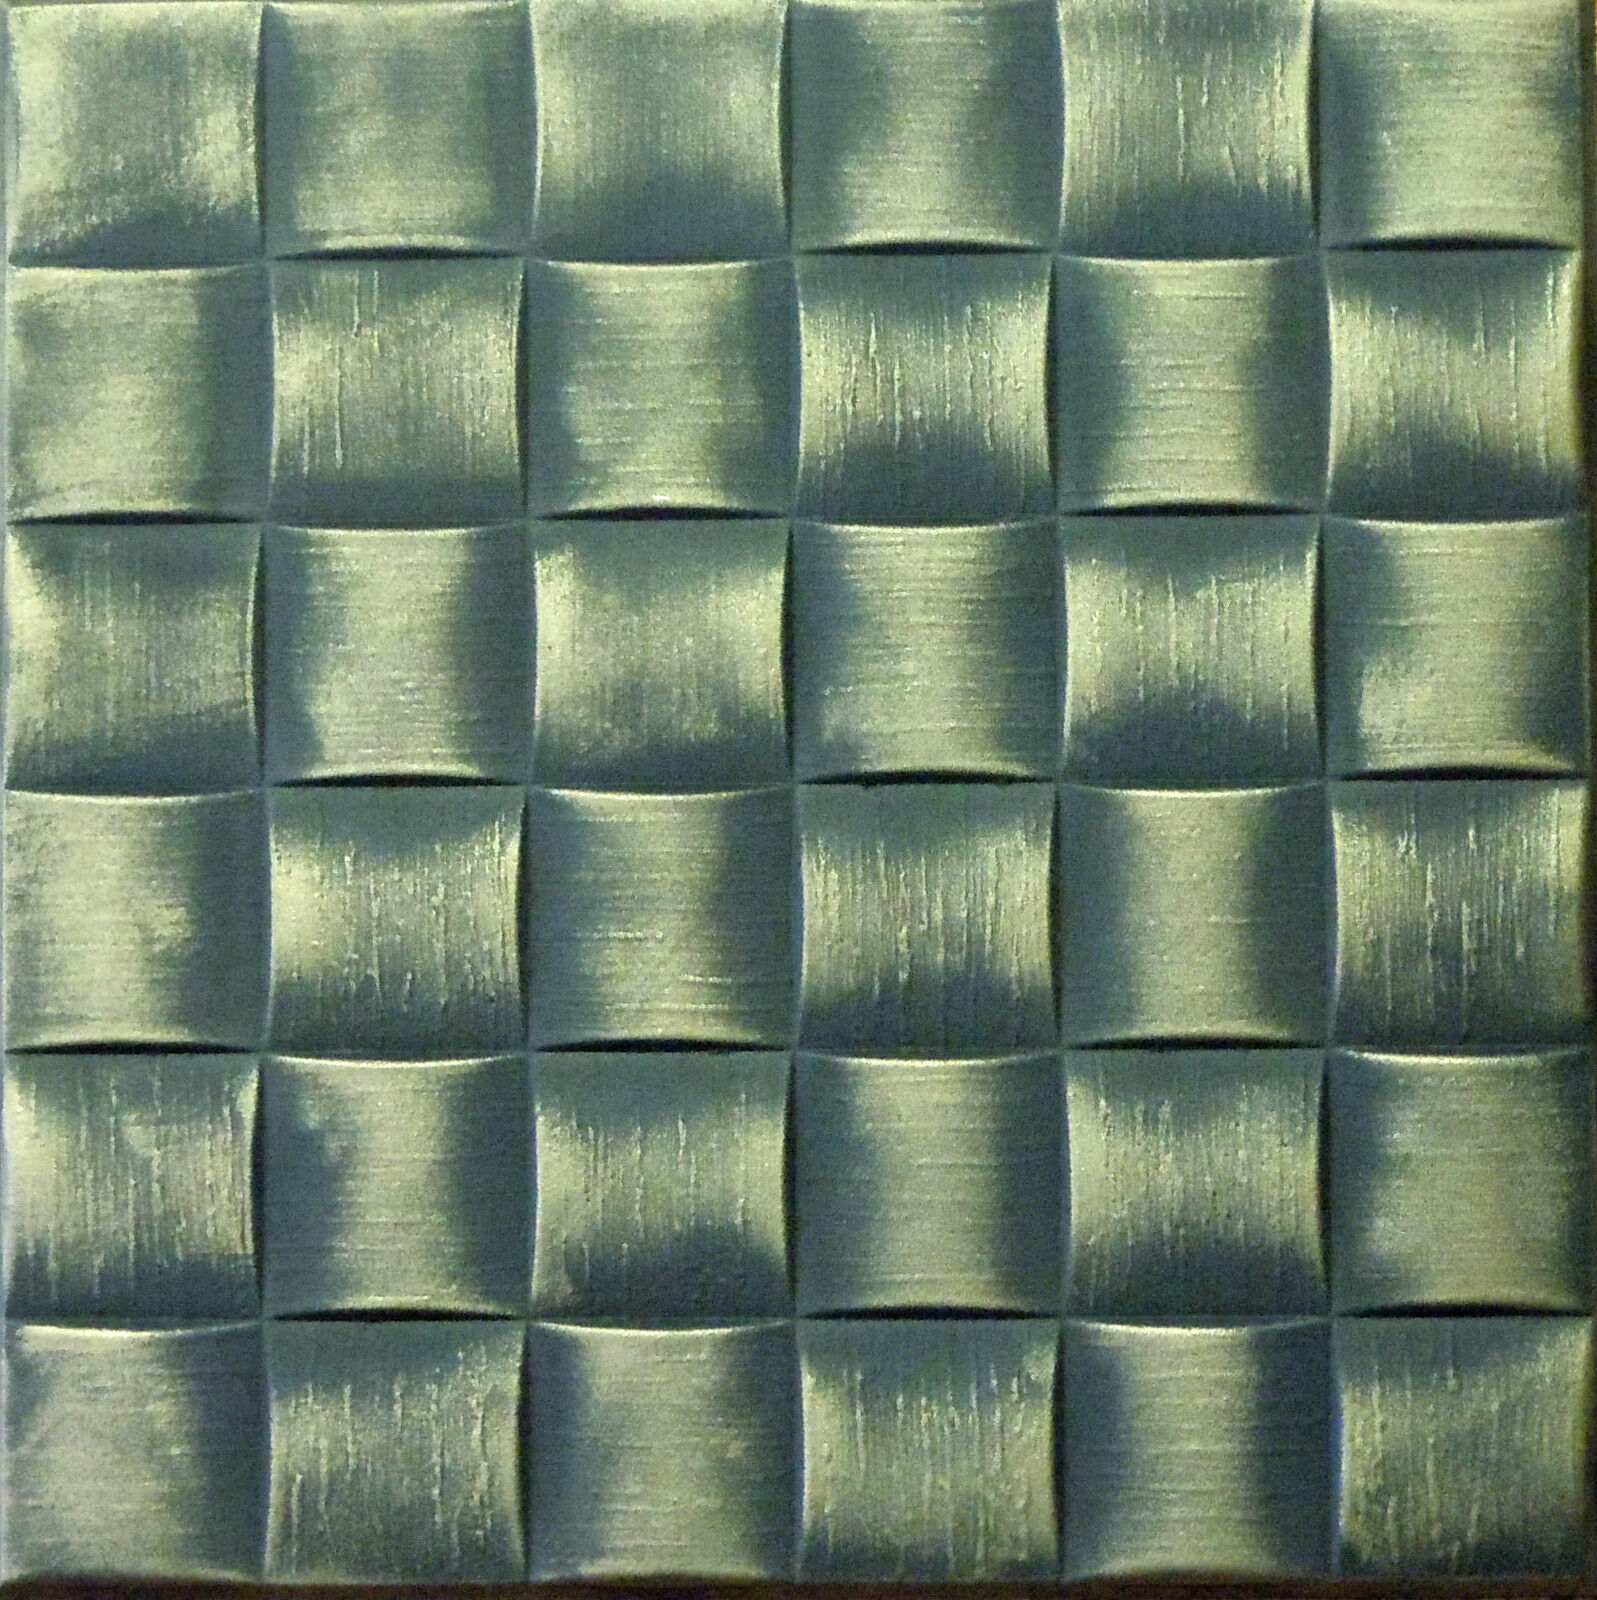 Decorative texture ceiling tiles glue up r25 black brass on ebay picture 1 of 3 dailygadgetfo Gallery